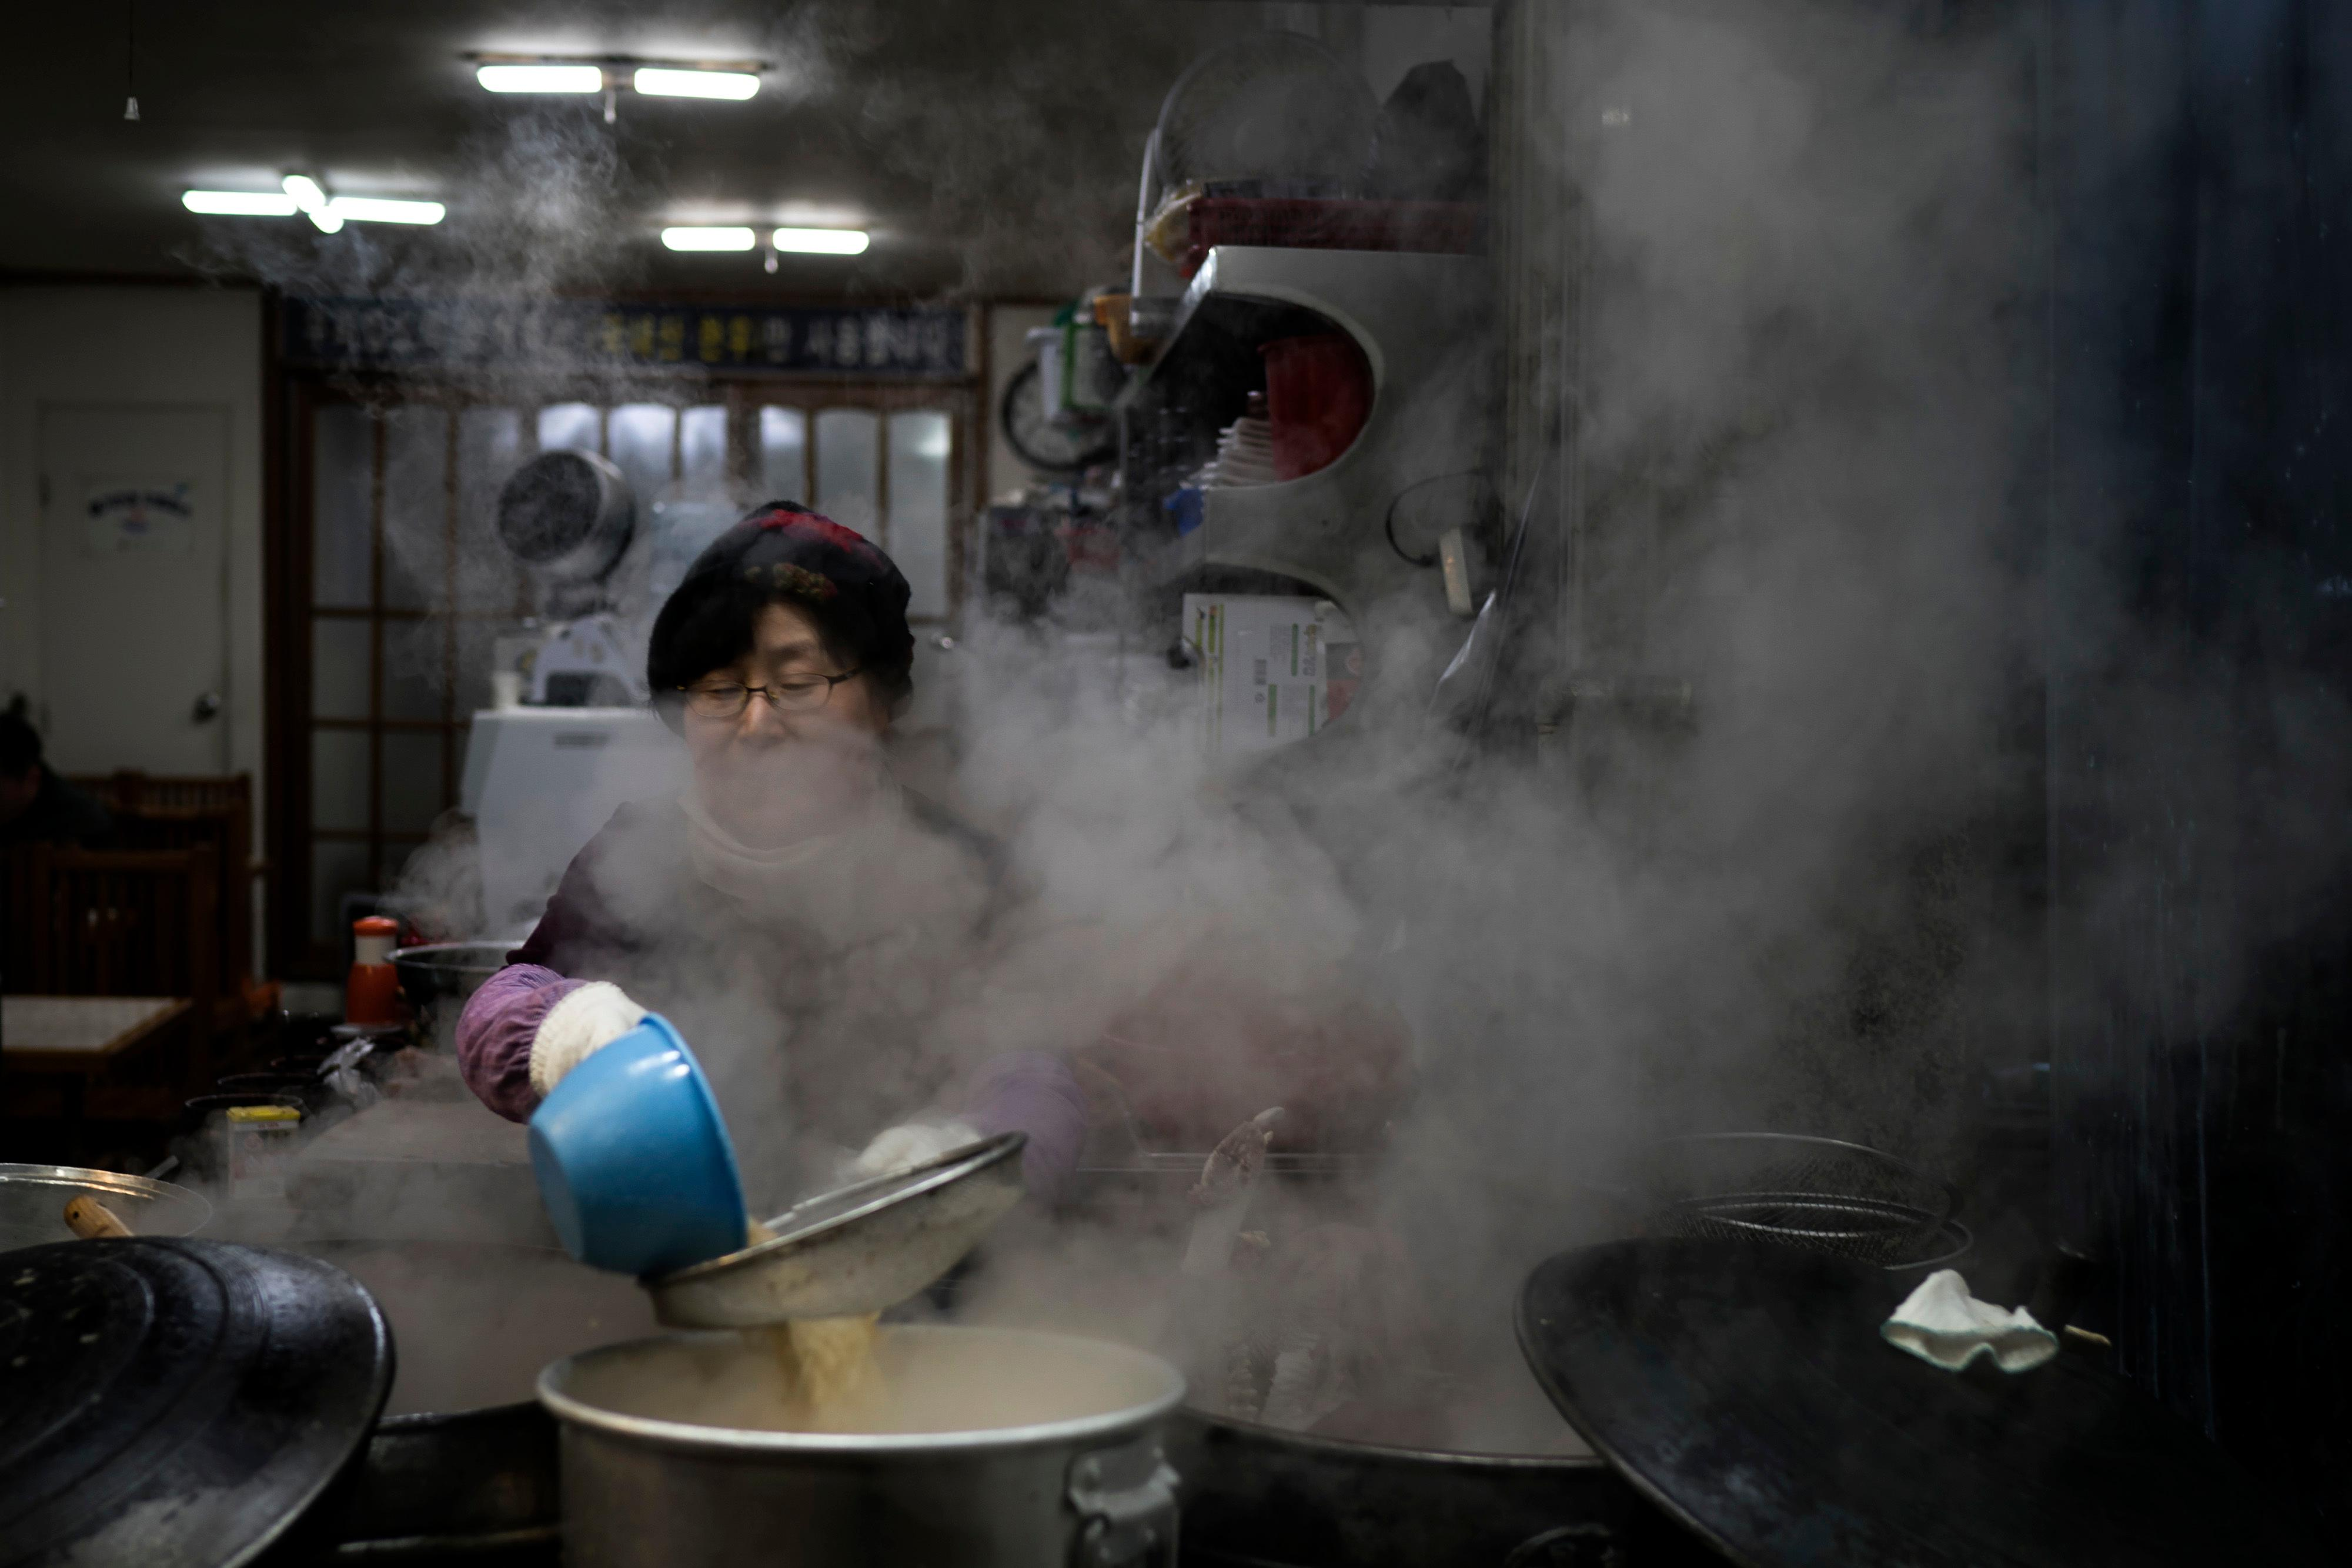 A woman cooks at a restaurant in Gangneung, South Korea, Monday, Feb. 12, 2018.  Korean food is some of the world's finest - savory, salty soups with fish so tender it falls off the bone; thick slabs of grilled pork and beef backed with spicy kimchi that many Korean grandmothers swear cures the common cold. But it's very different from what many foreign Olympians are used to. (AP Photo/Felipe Dana)